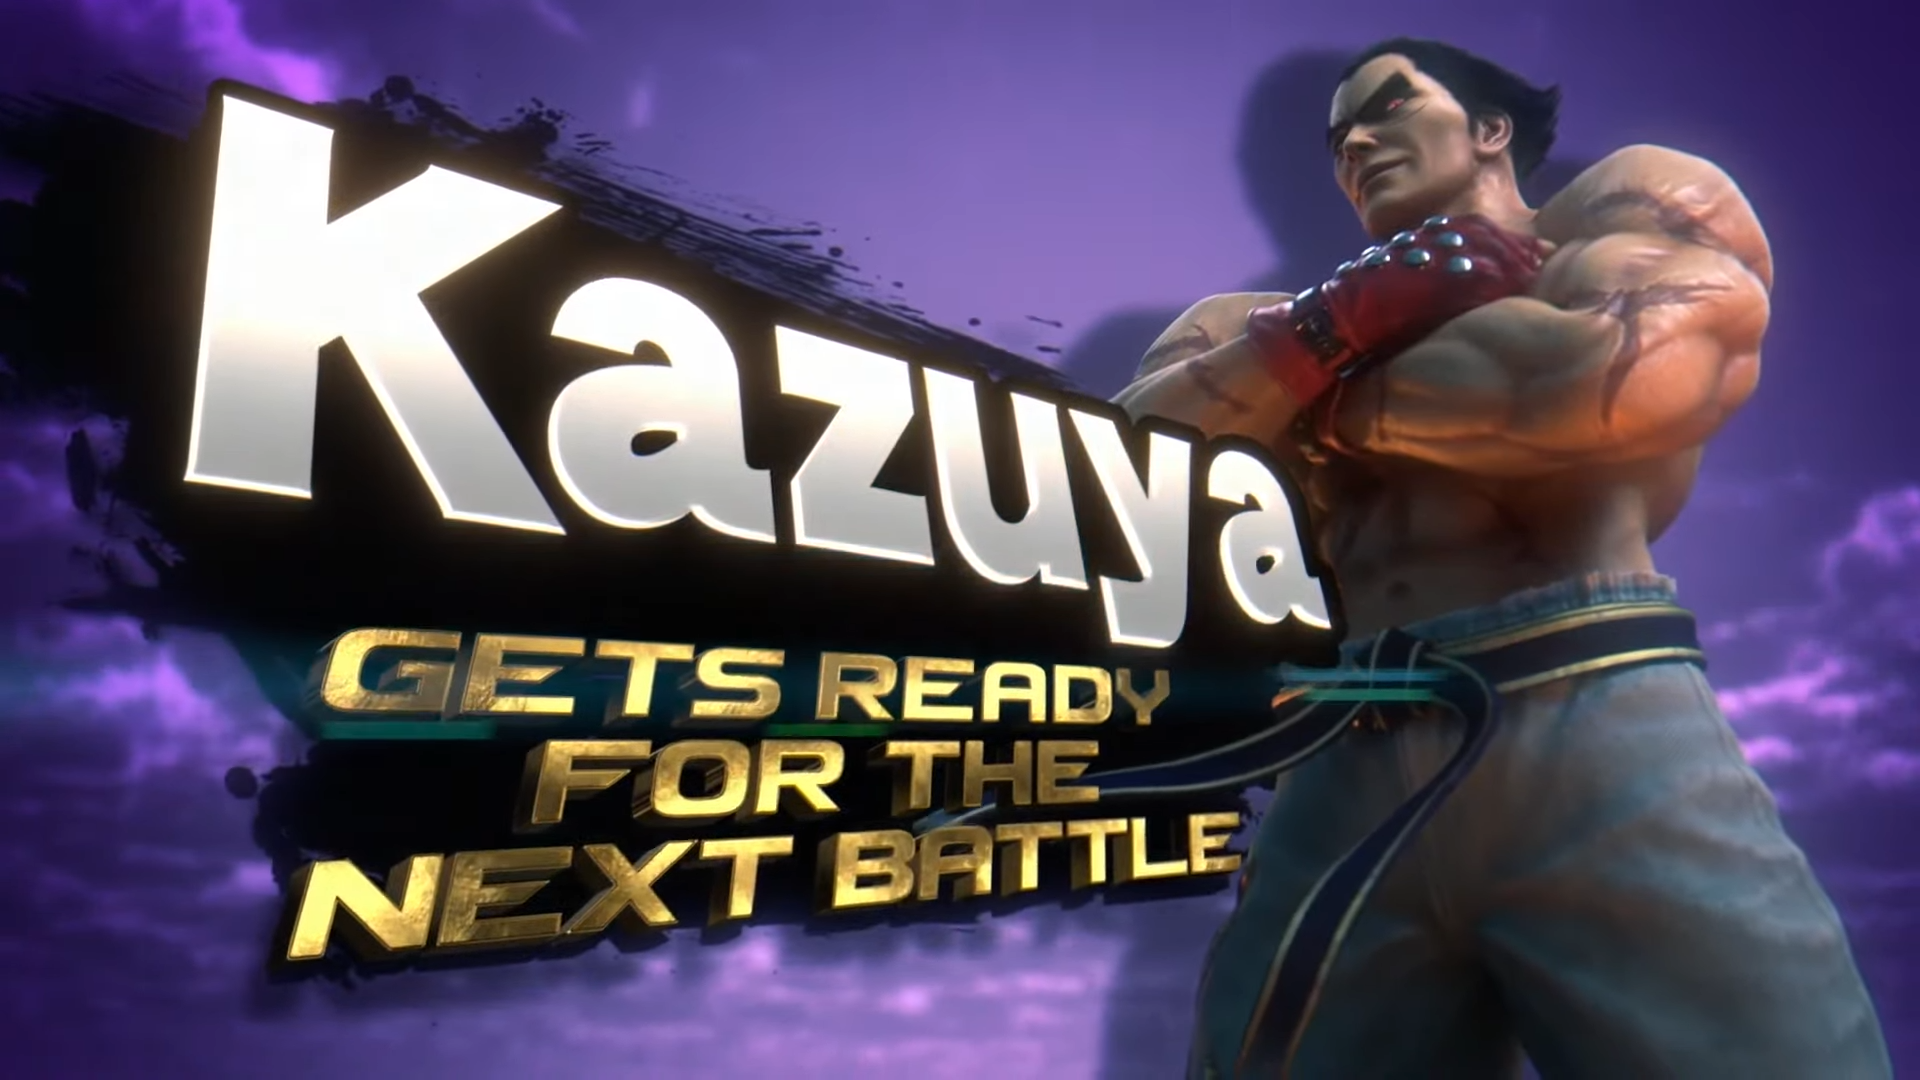 https://ssb.wiki.gallery/images/b/b7/Kazuya_Gets_Ready_For_the_Next_Battle.png